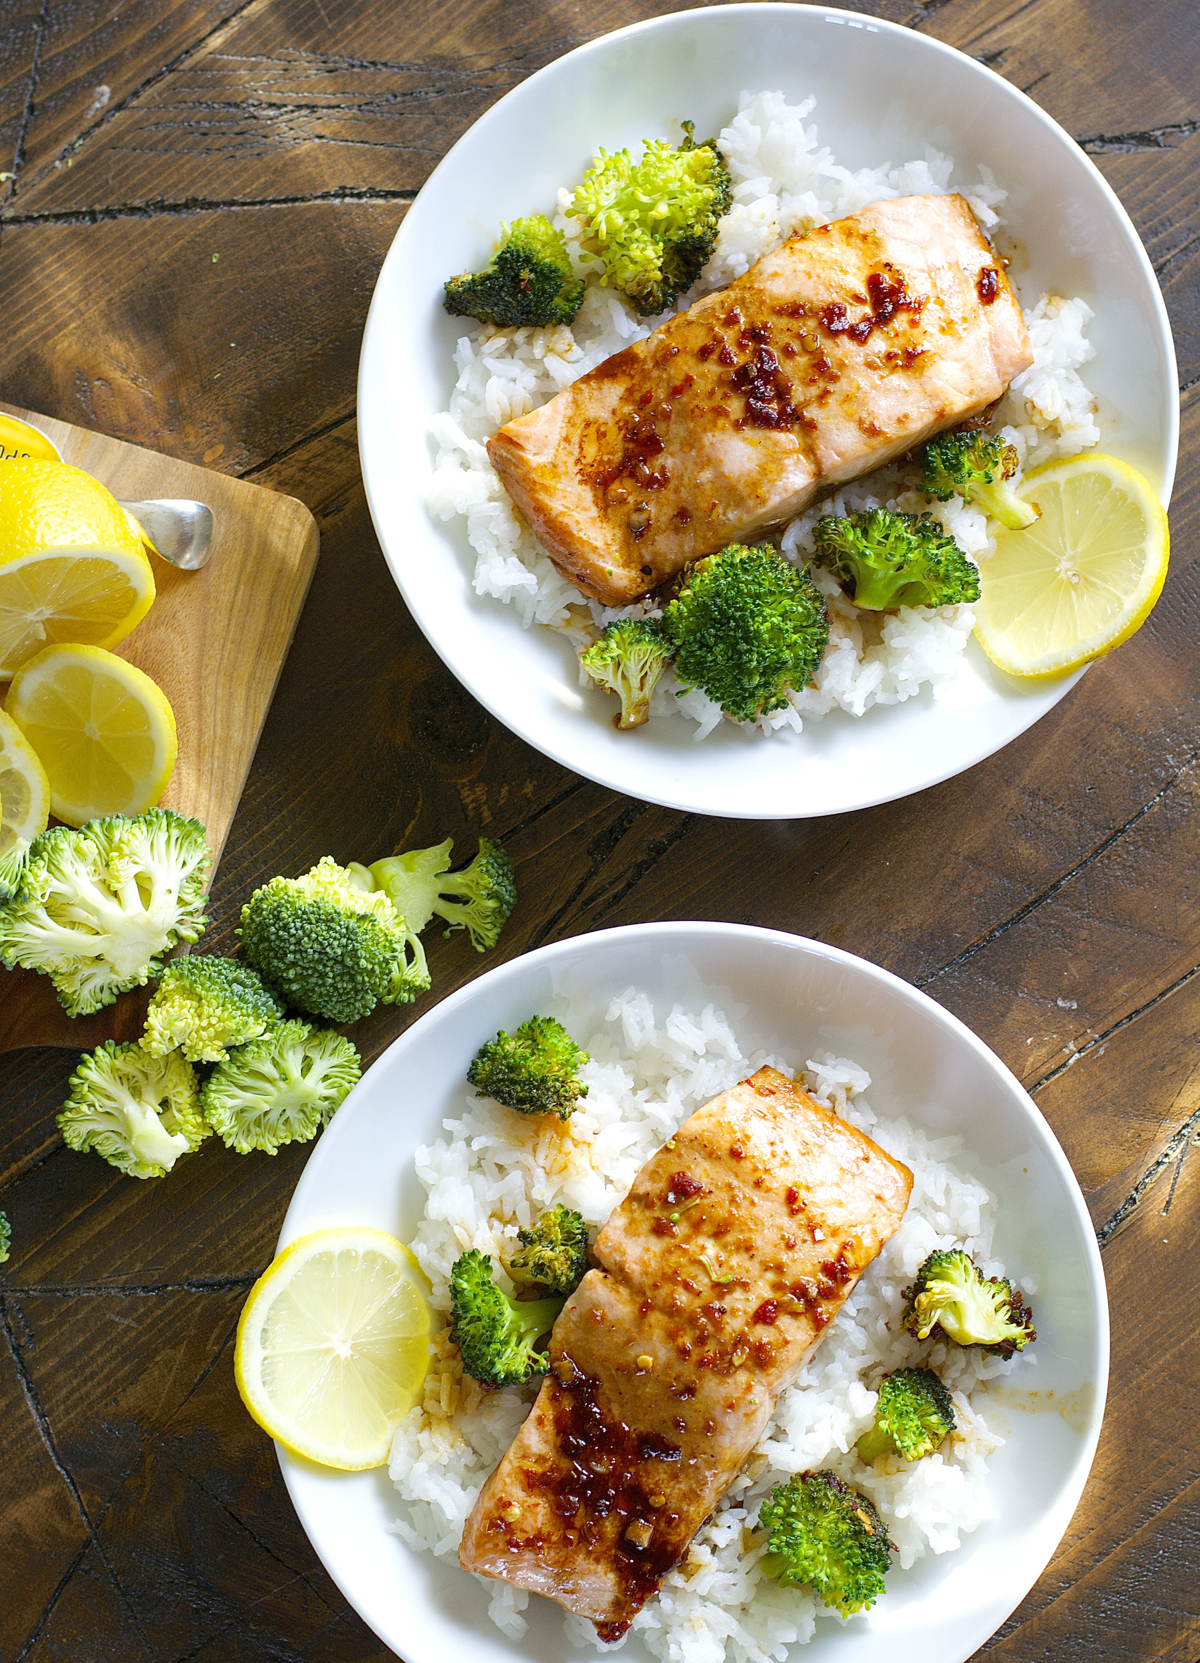 top view of two salmon rice bowls with broccoli and lemon slices